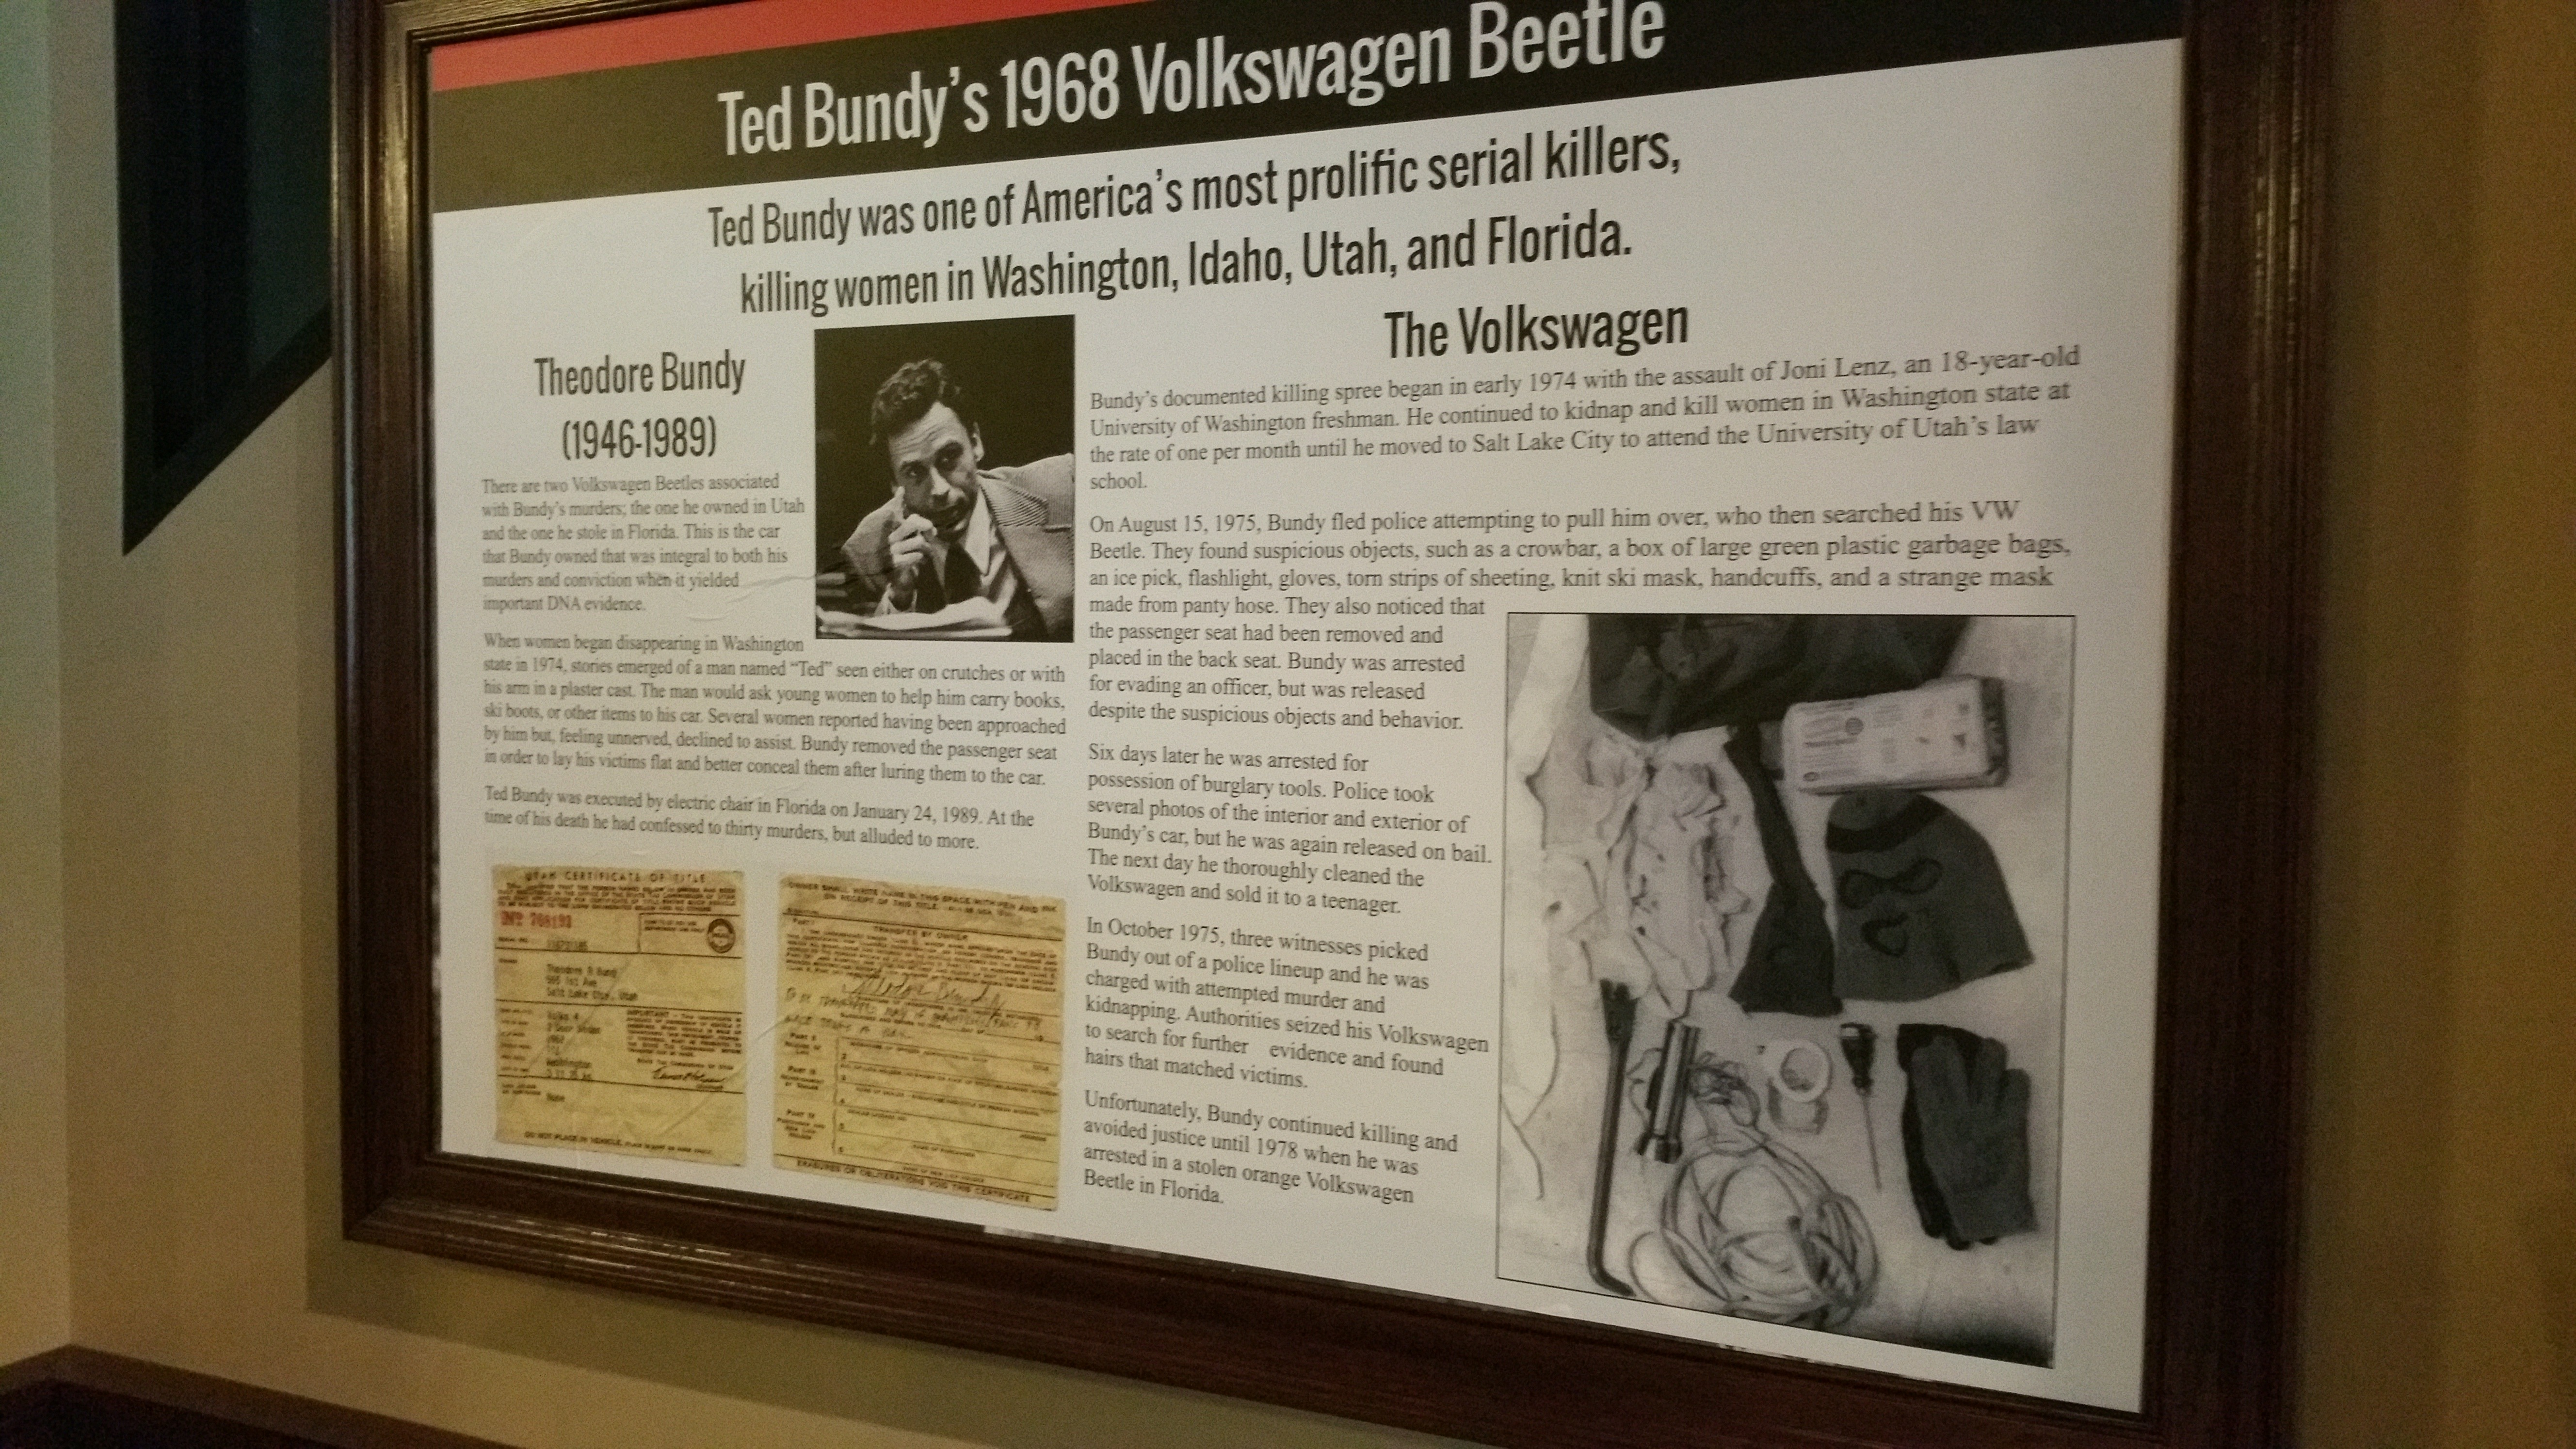 A Curious Look Inside Ted Bundy's VW Beetle | True Crime Magazine